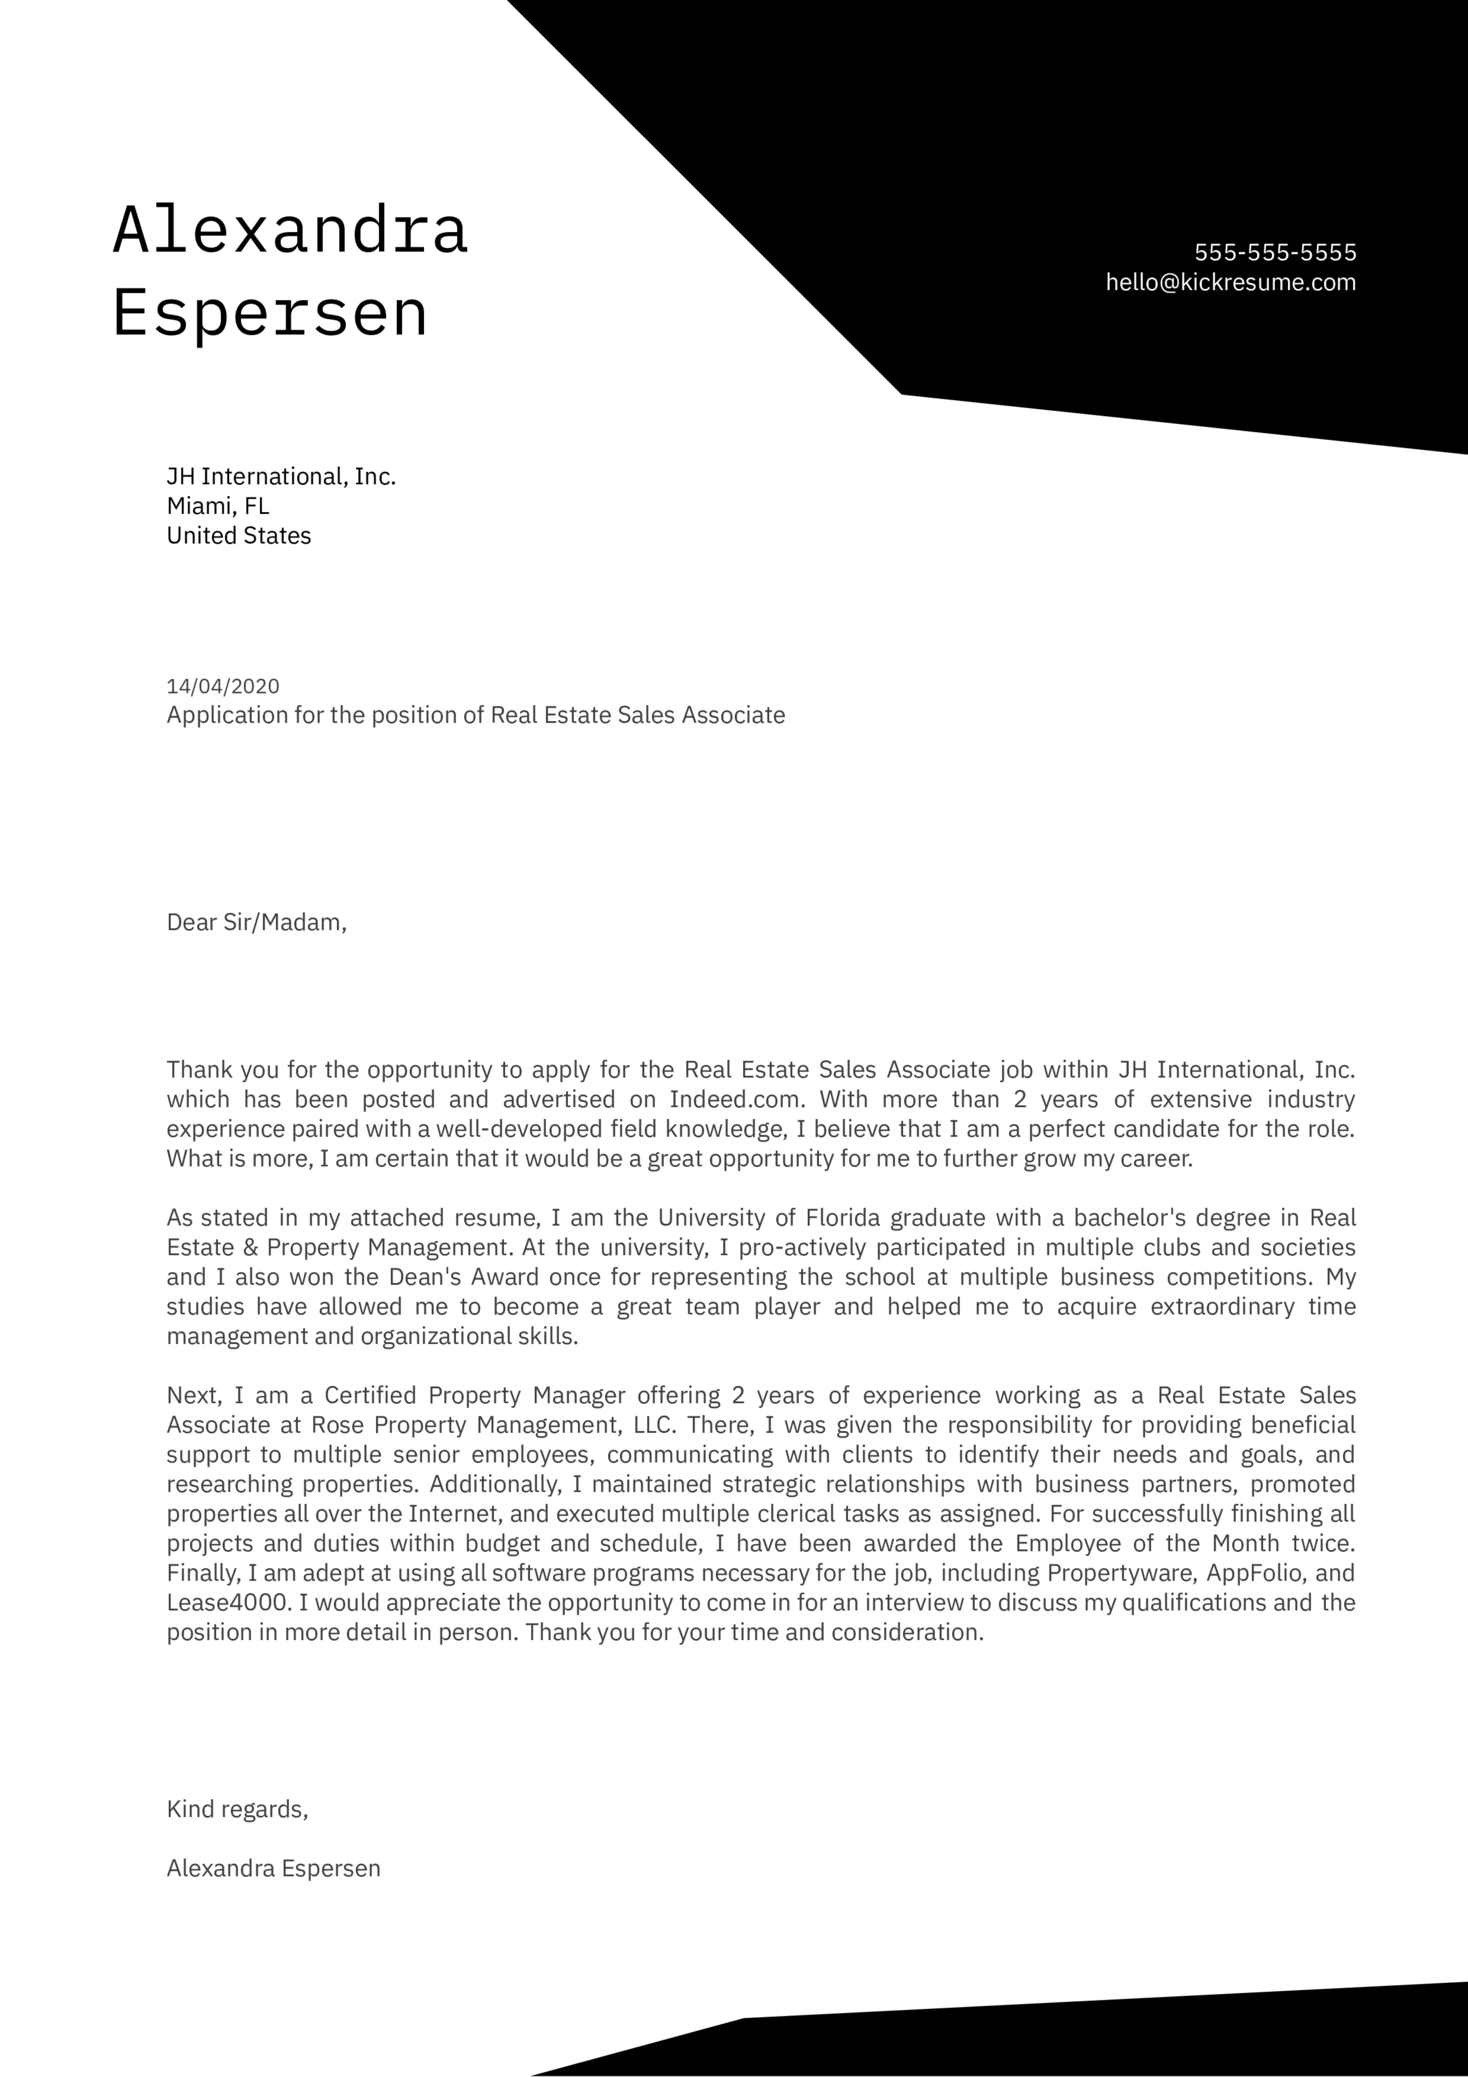 Real Estate Sales Associate Cover Letter Example